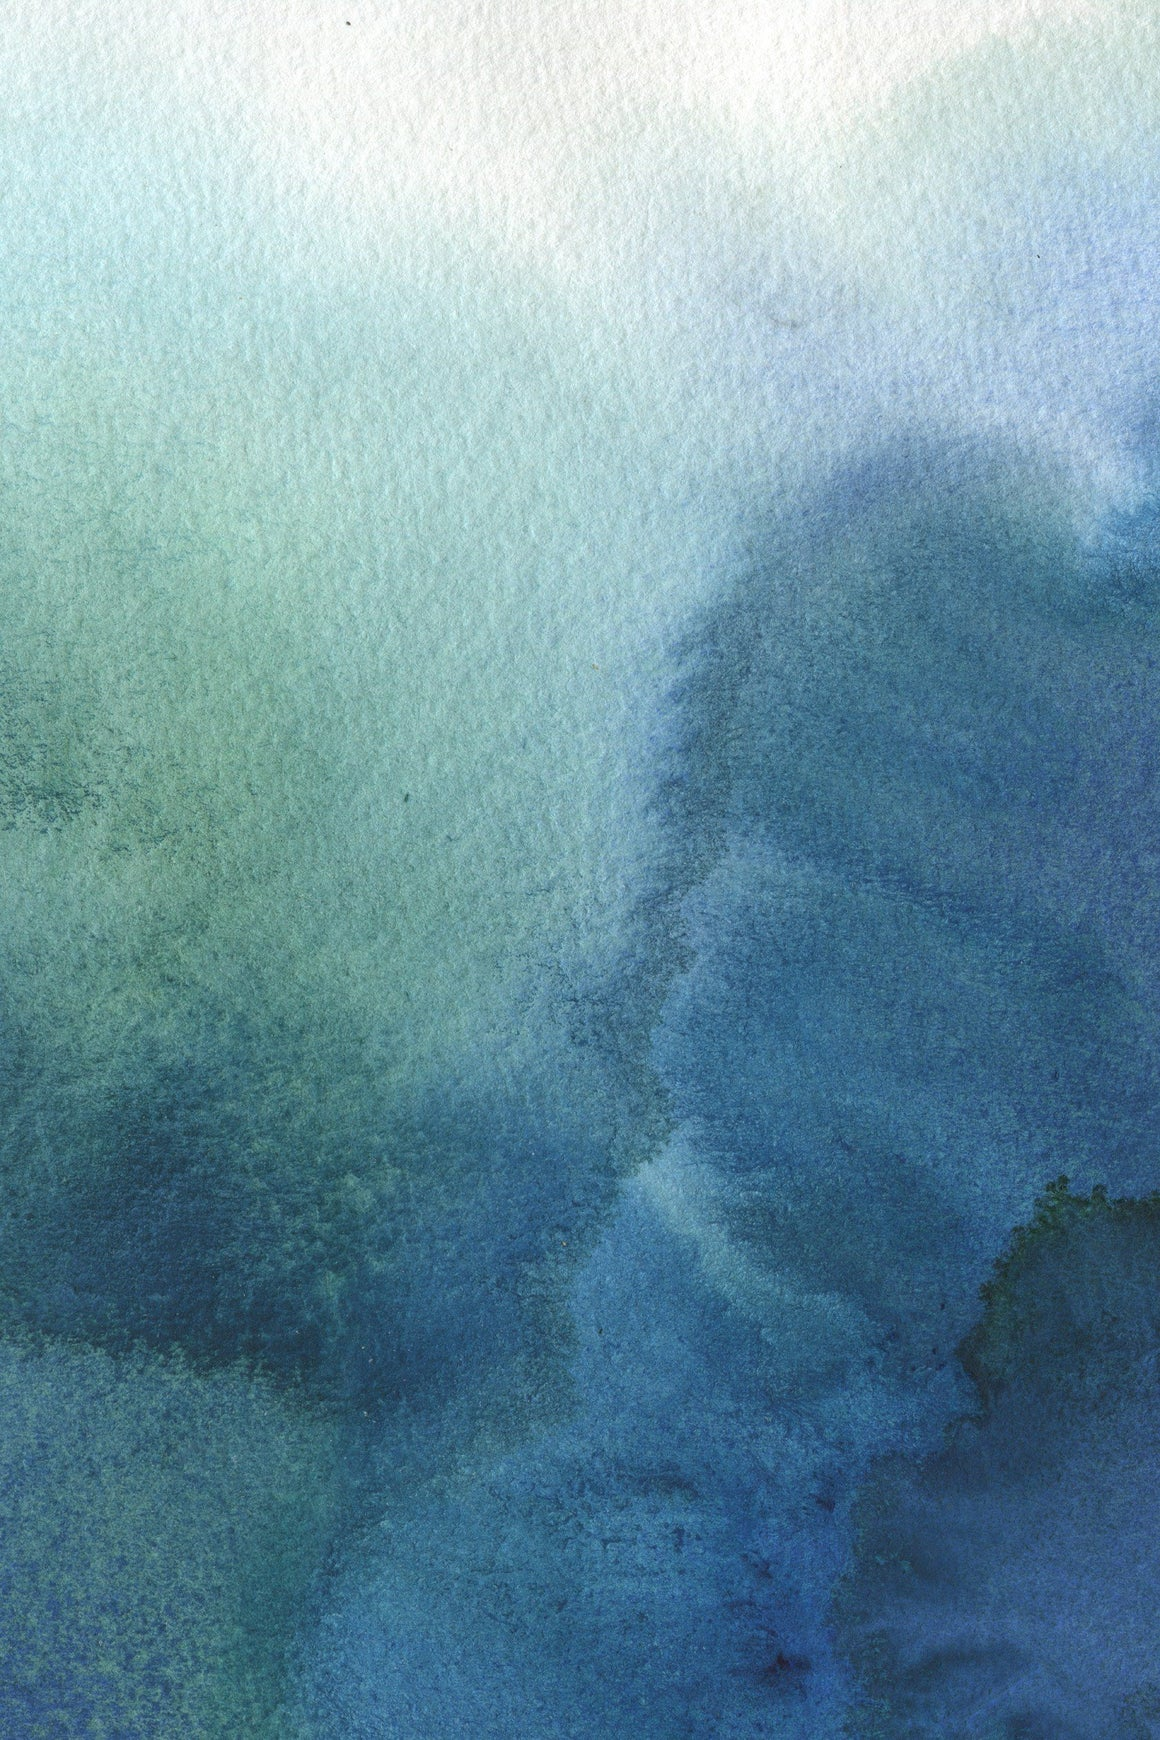 Watercolor artwork in shades of blue and teal of blotches of ink that collide and are ombre in color